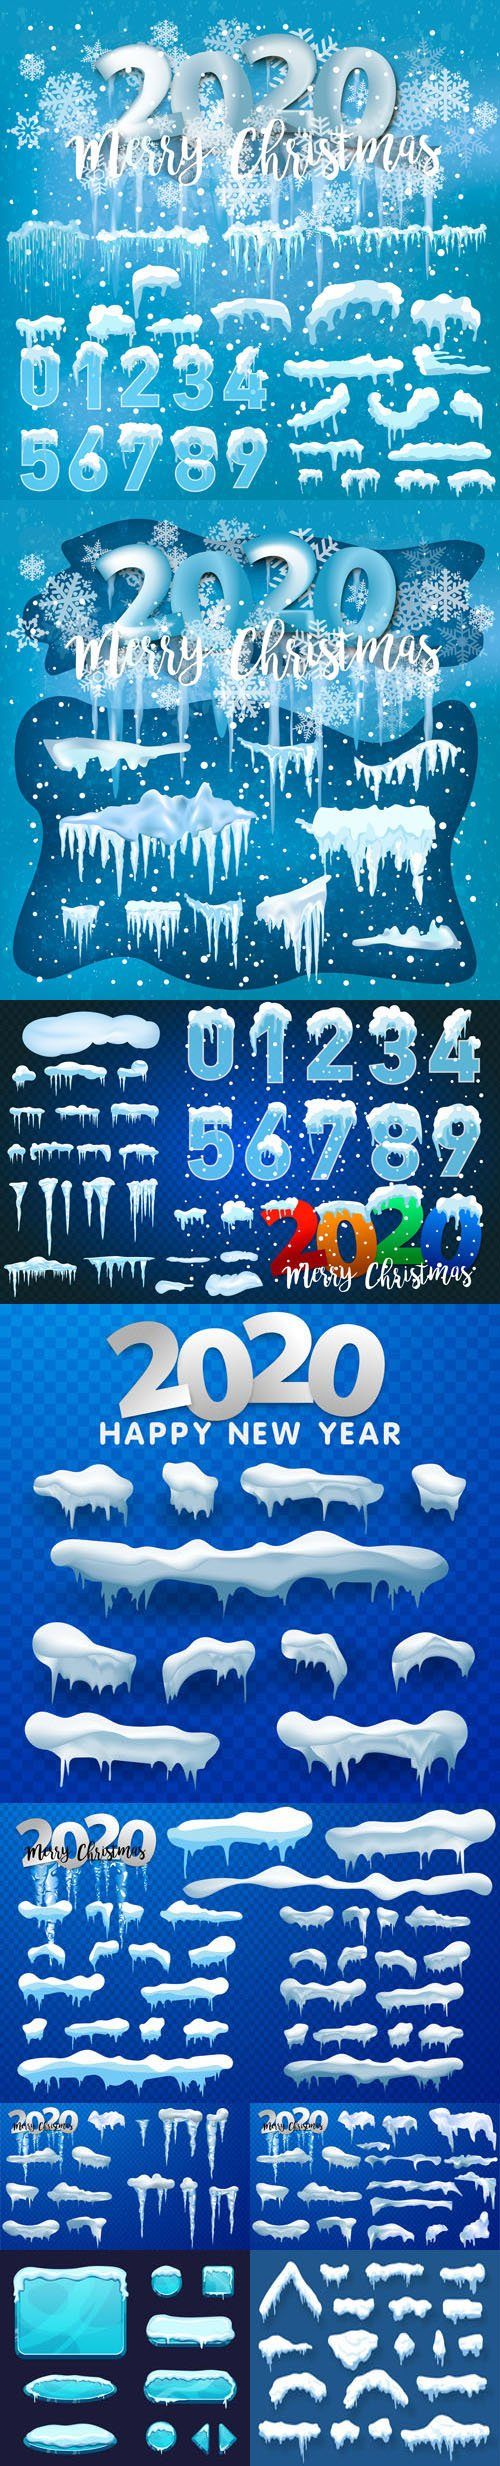 New Year 2020 Ice & Snow Vector Templates